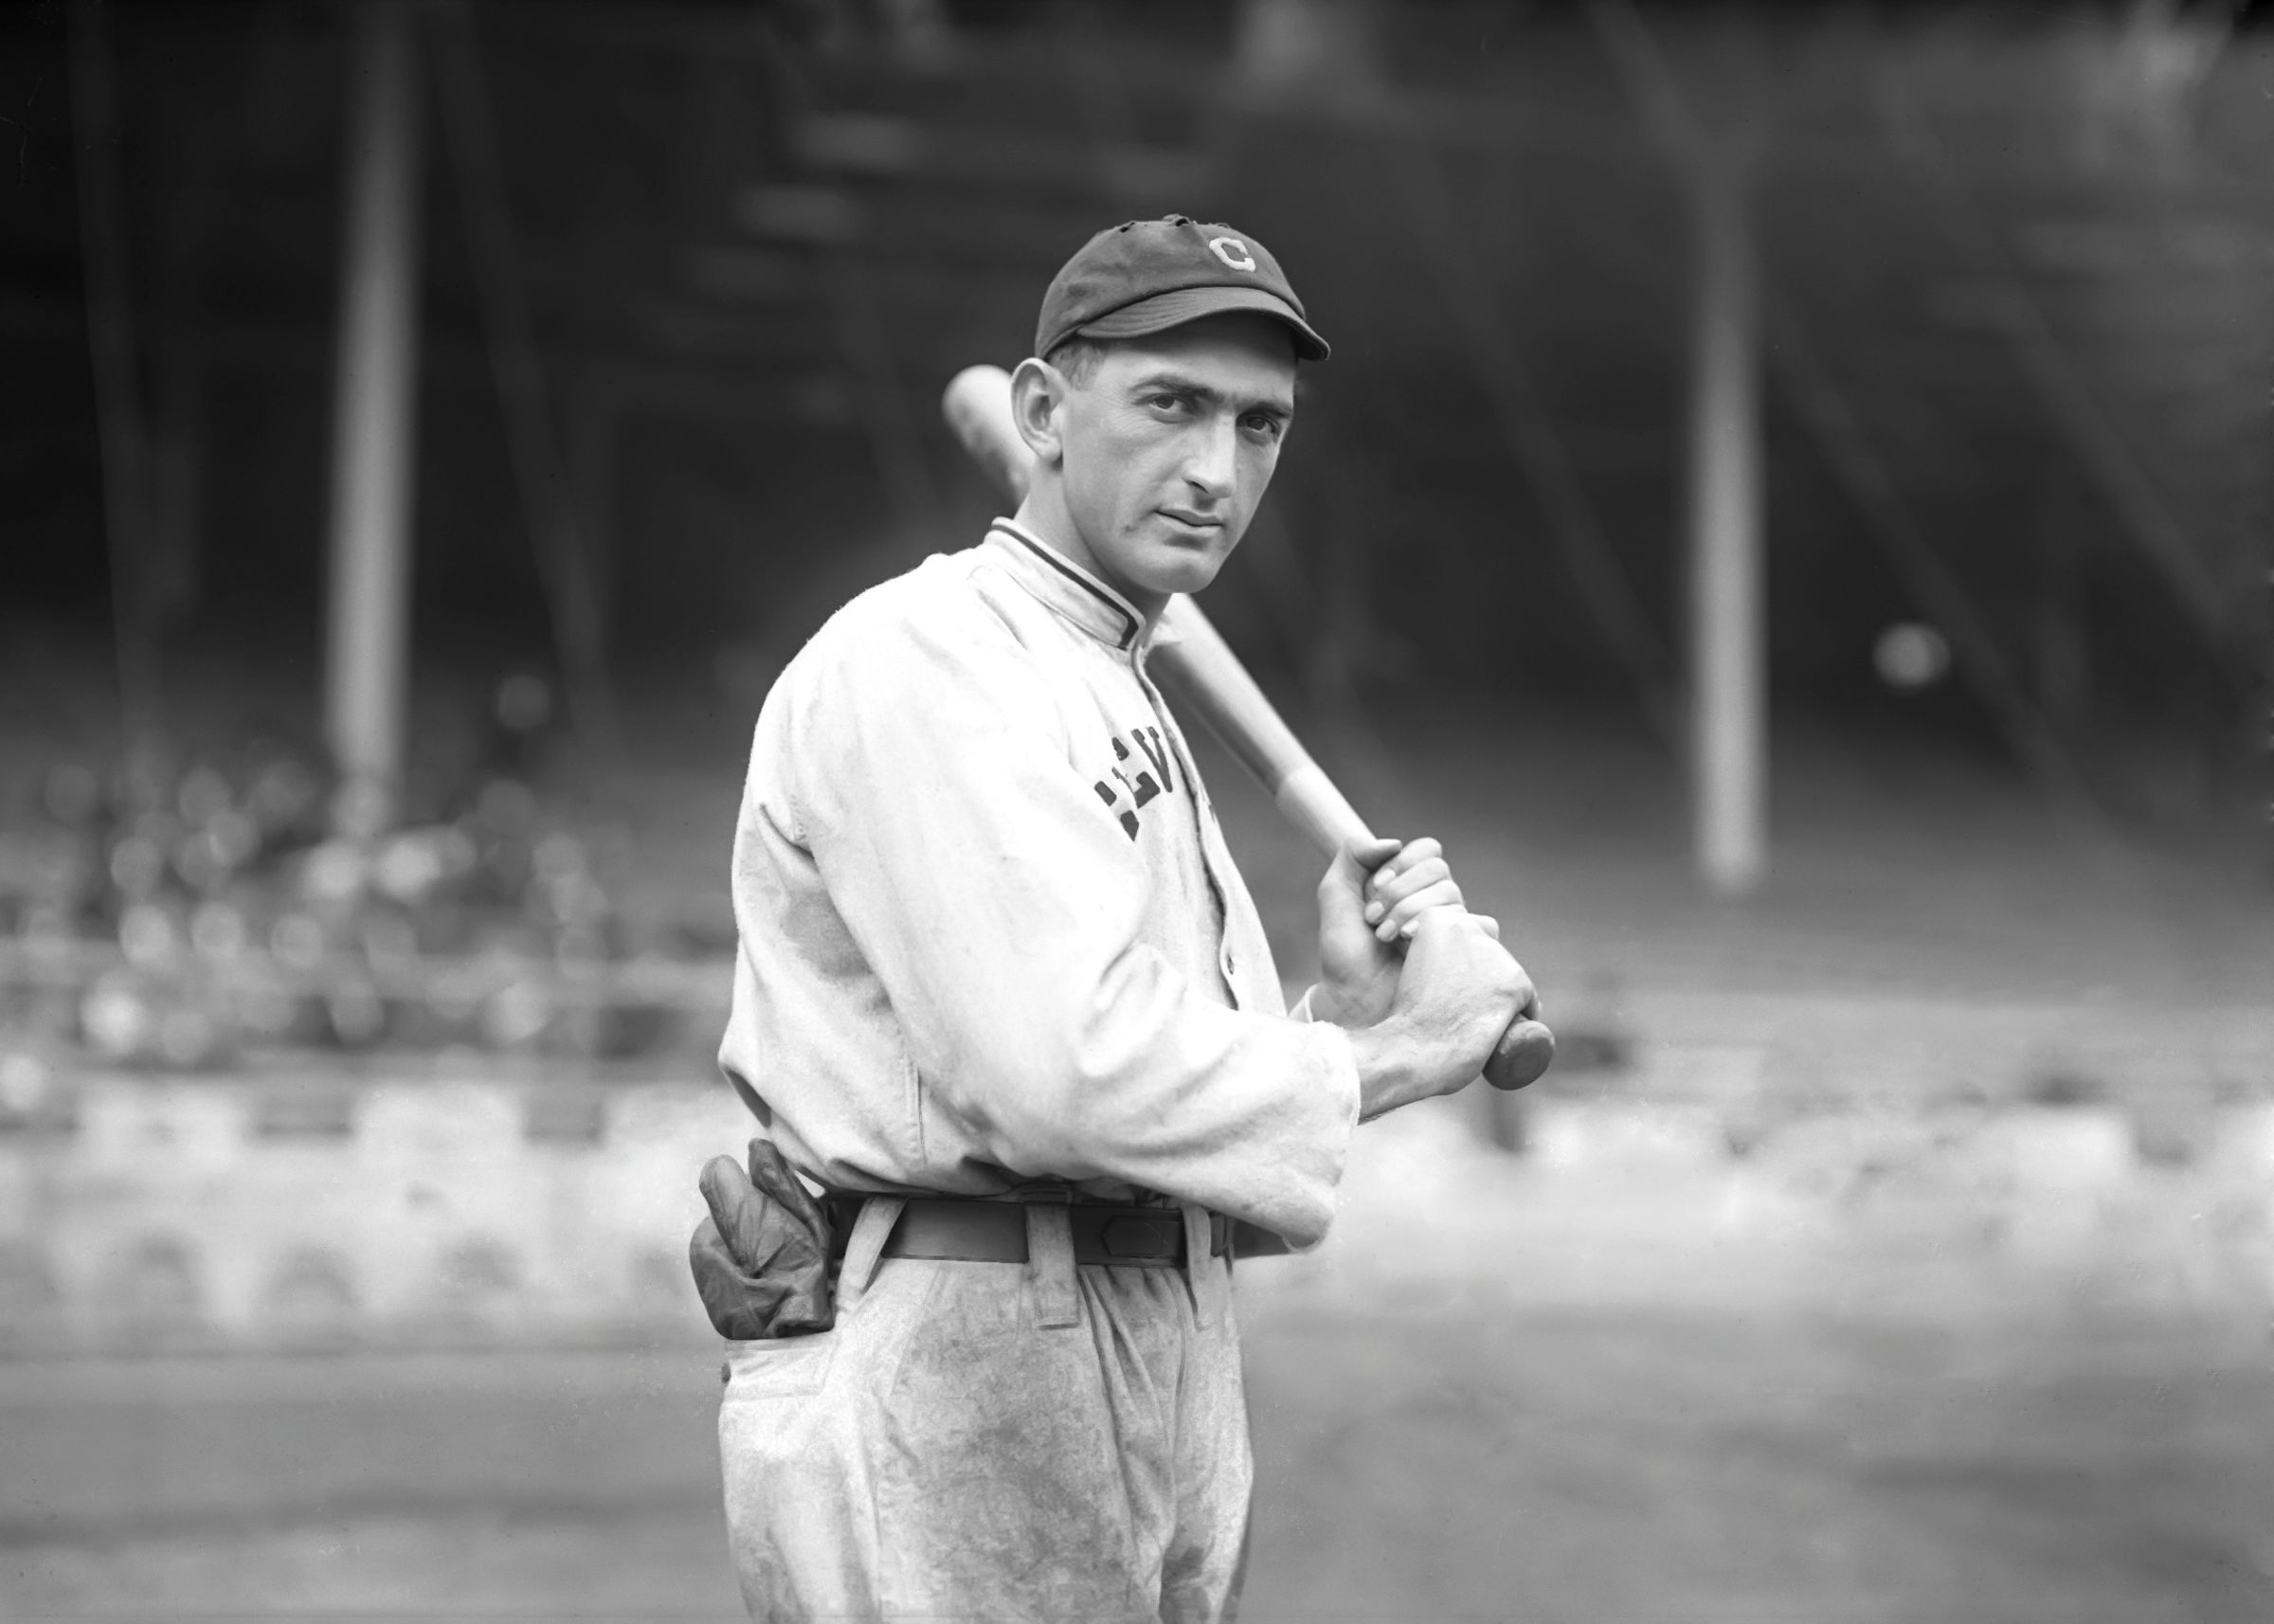 30 Worst Trades in MLB History -- This work is in the public domain in the United States because it was published (or registered with the U.S. Copyright Office) before January 1, 1923.